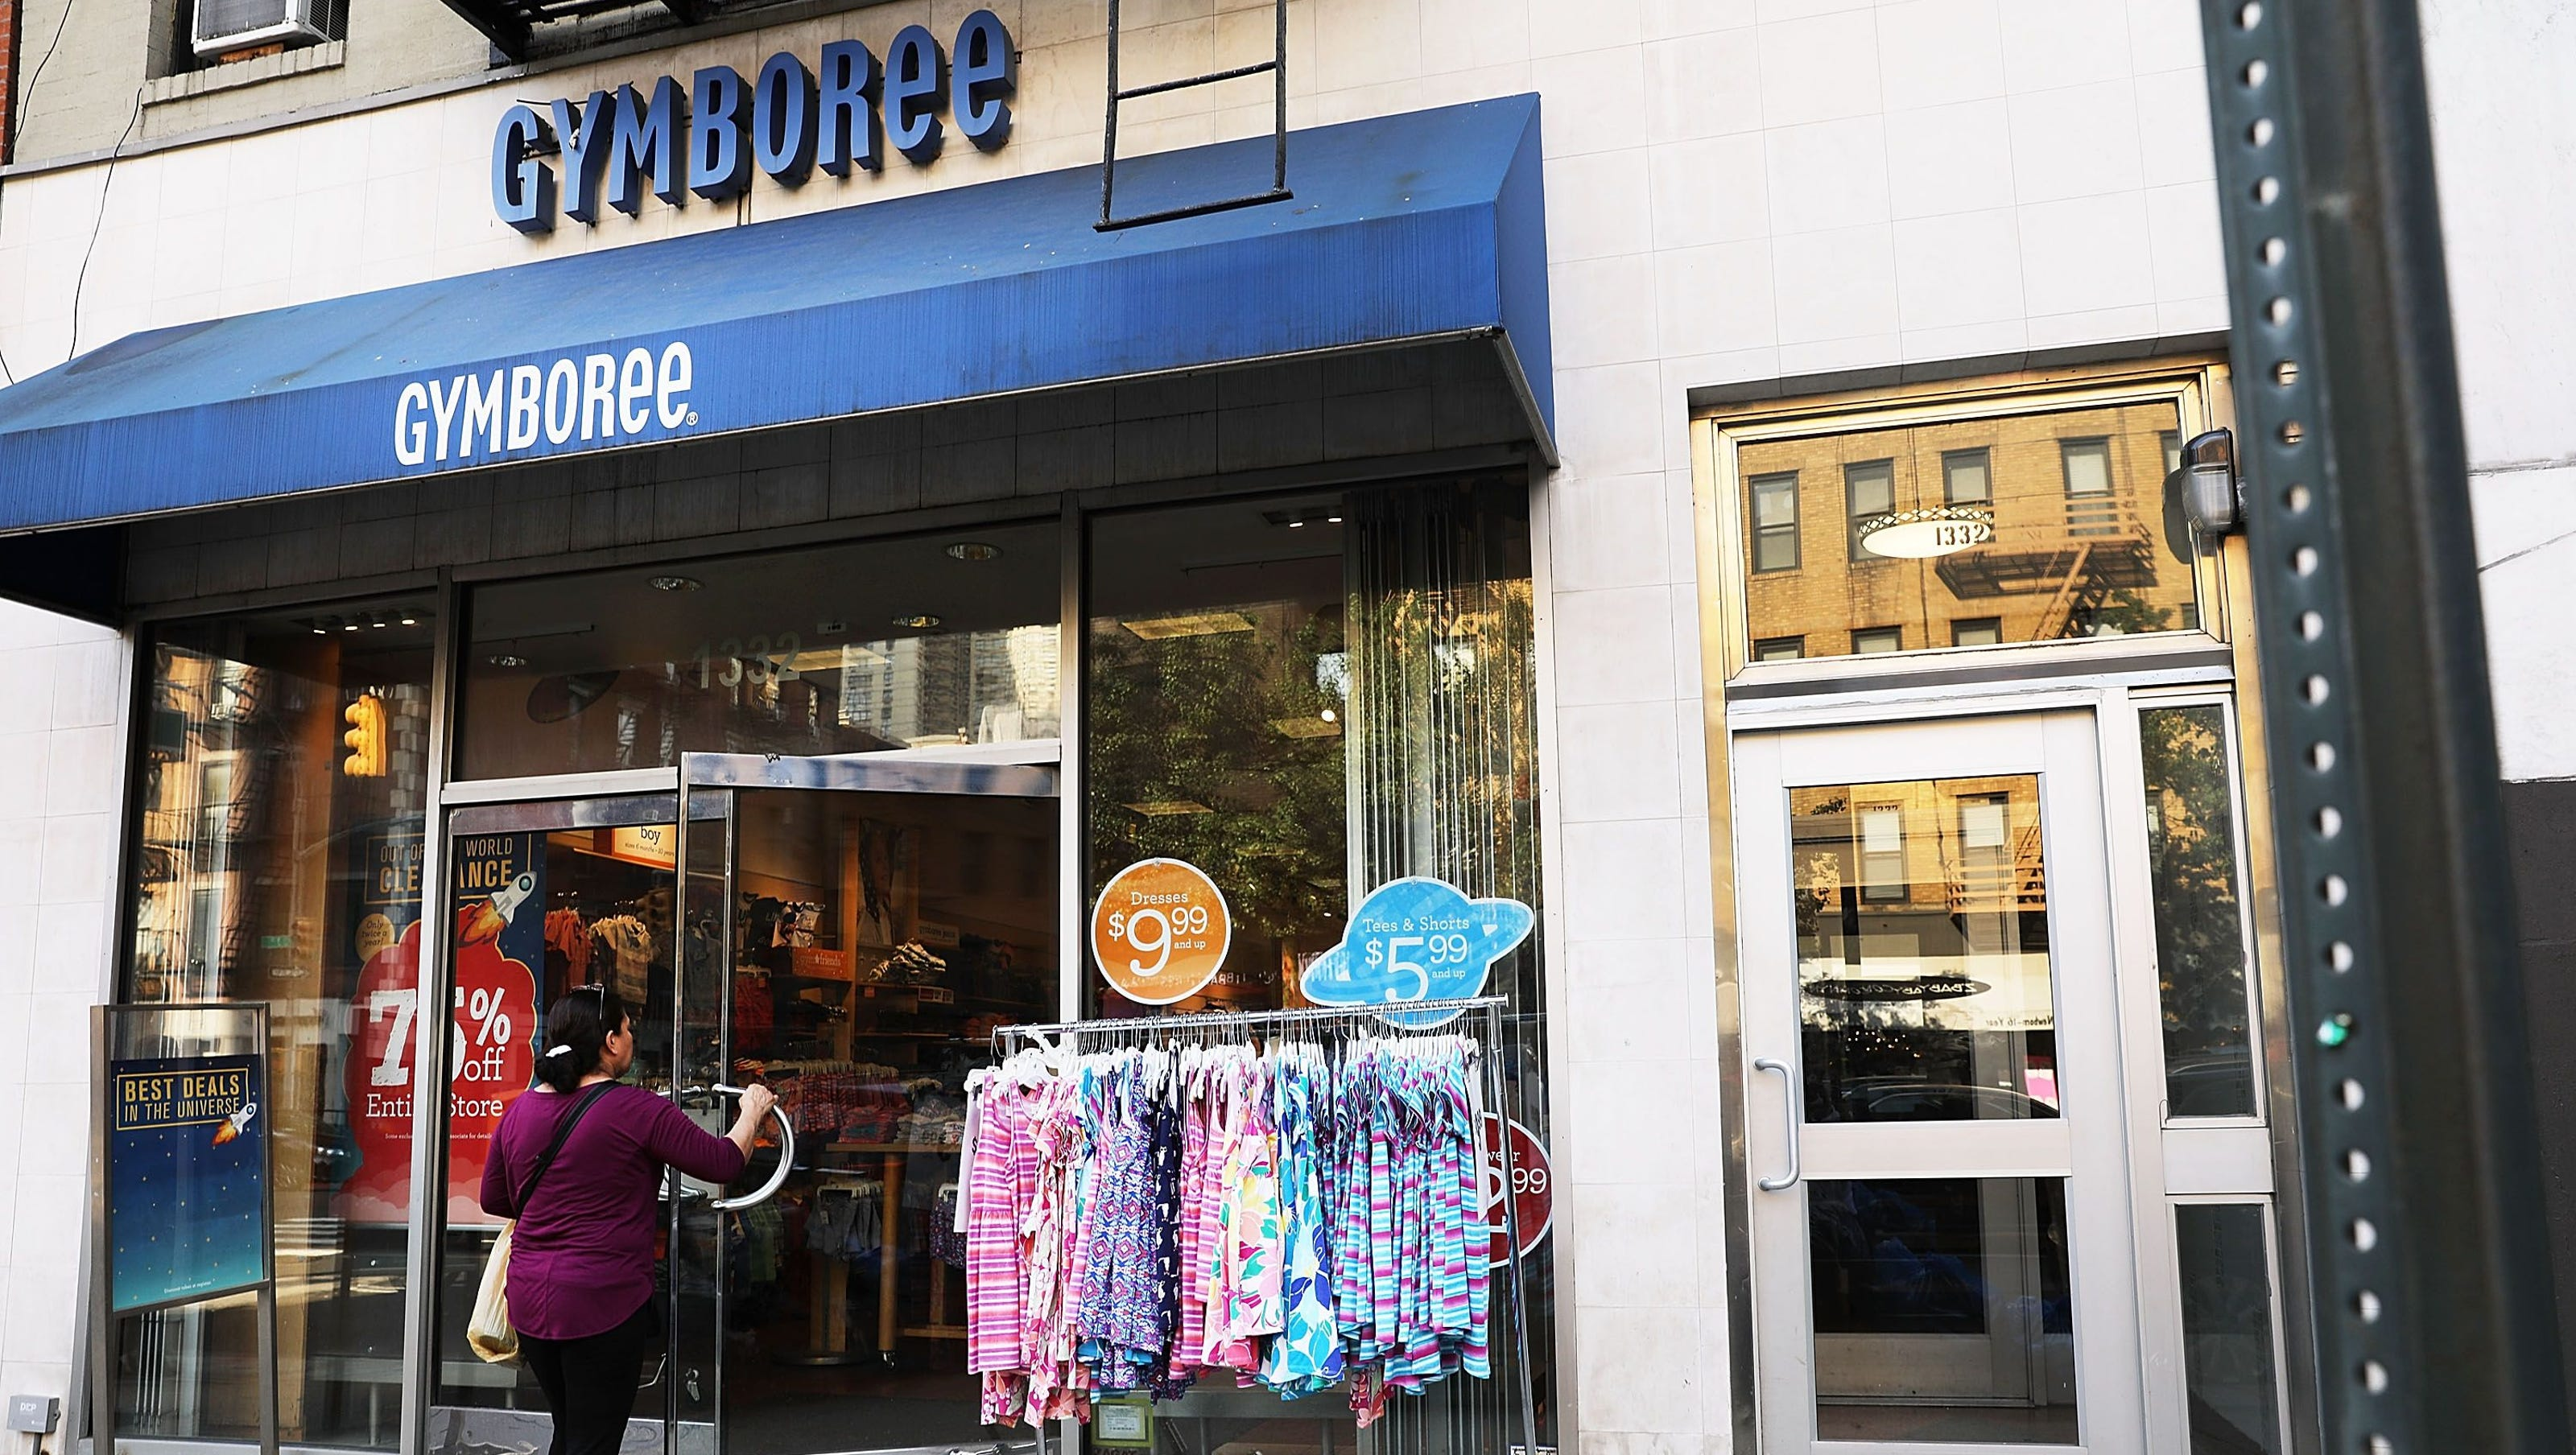 gymboree closing 350 stores, here is the list